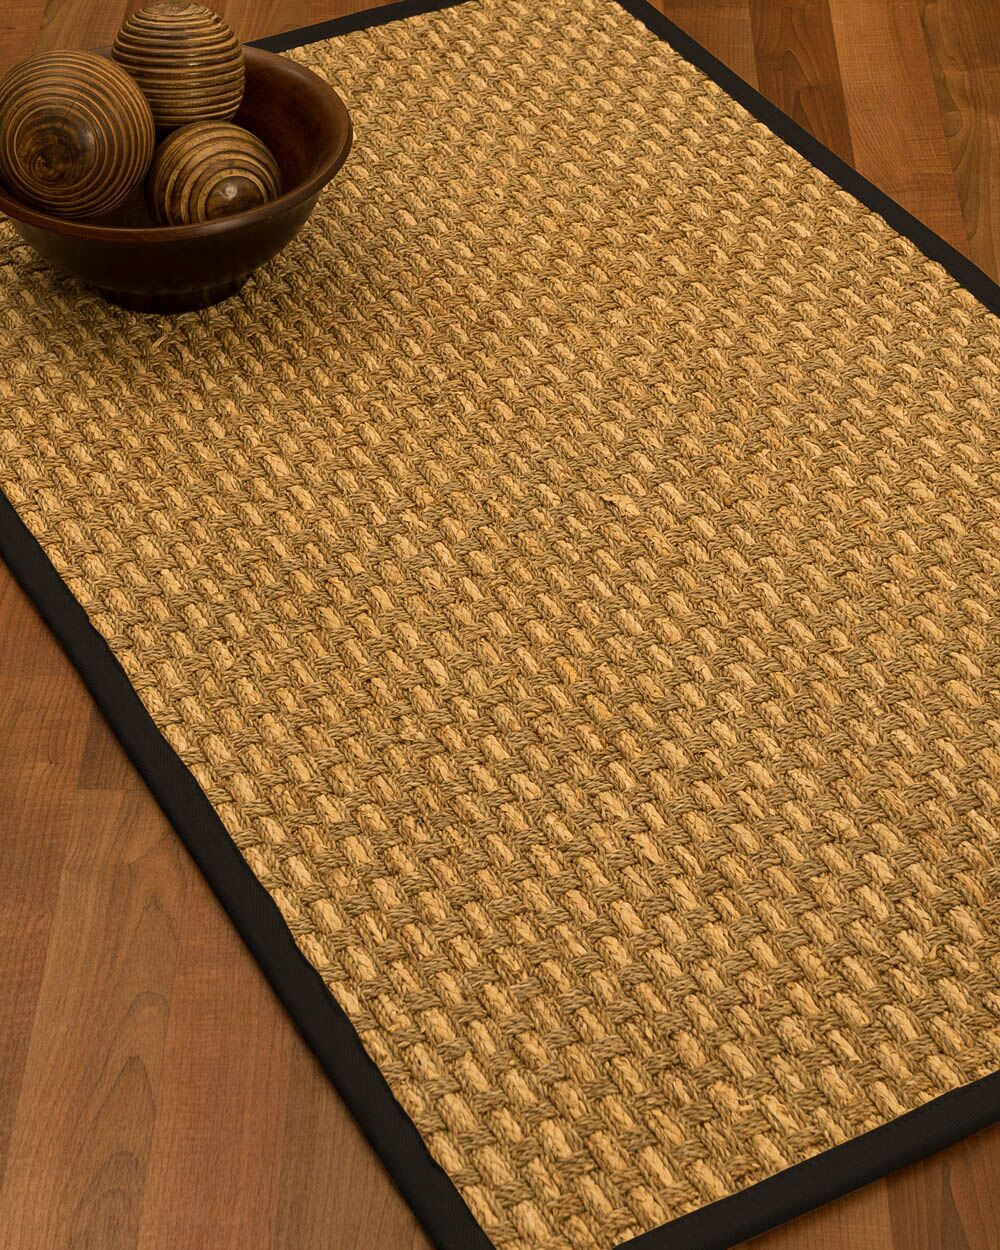 Castiglia Border Hand-Woven Beige/Black Area Rug Rug Size: Rectangle 5' x 8', Rug Pad Included: Yes